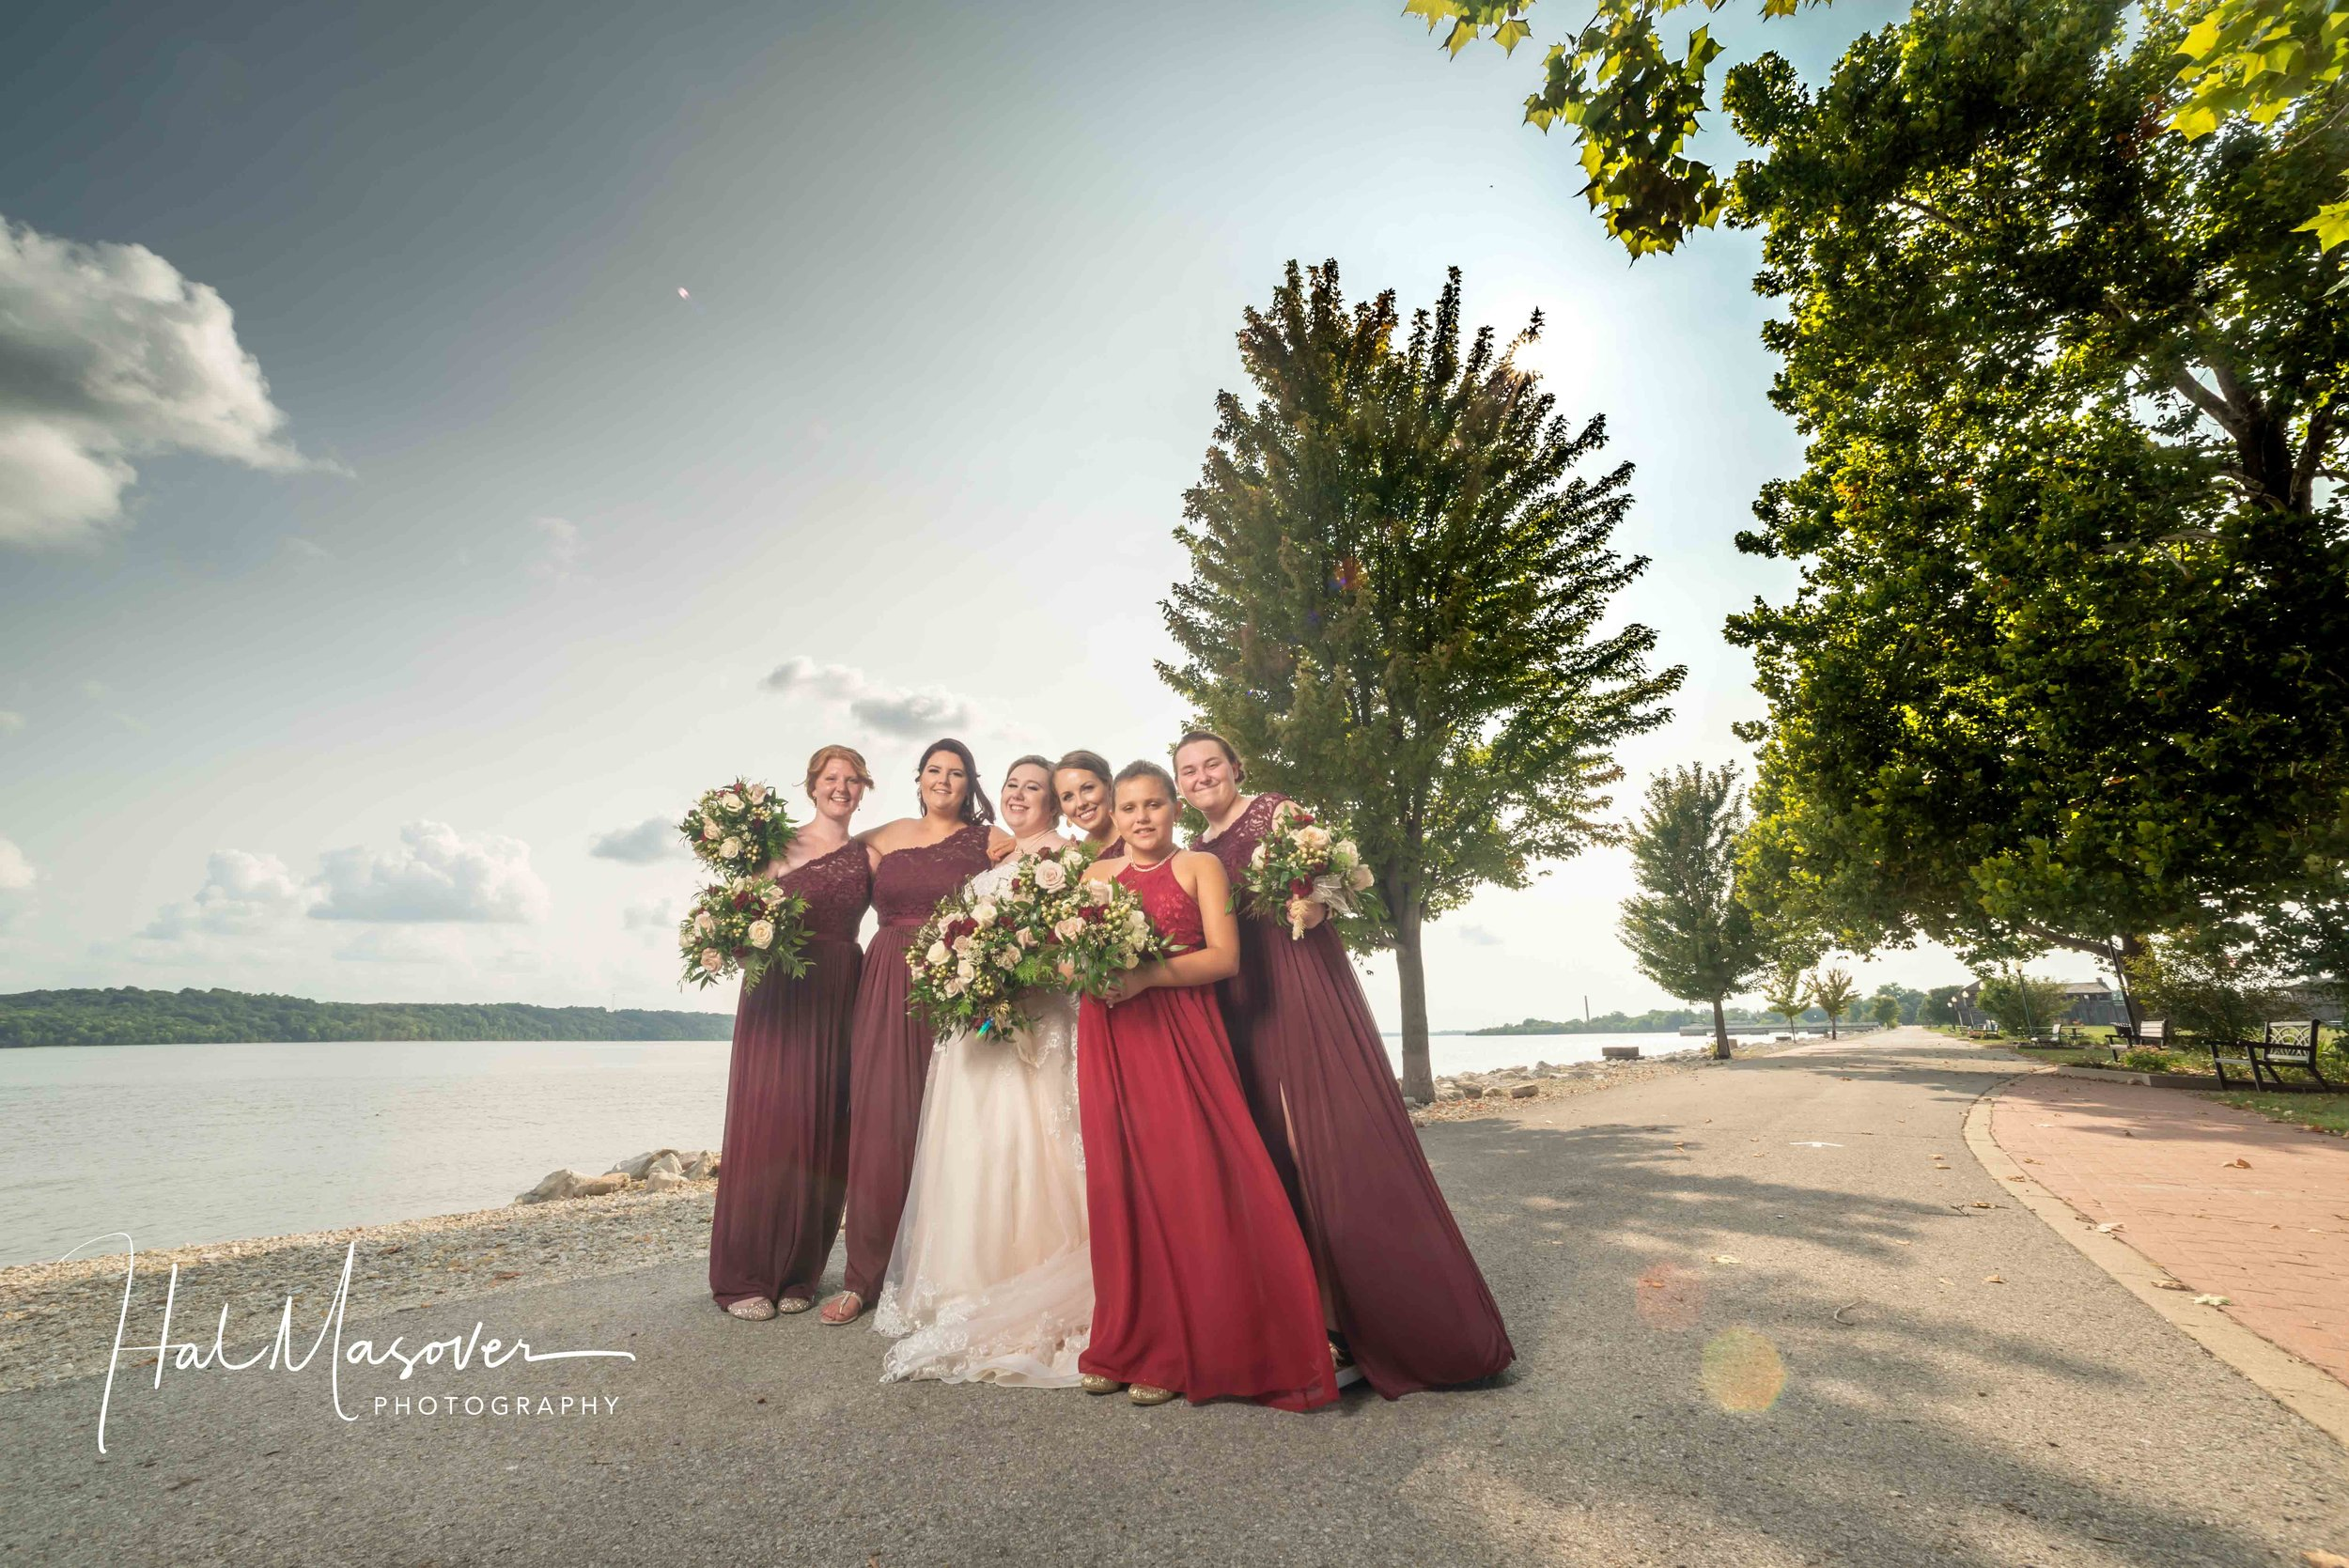 Diton wedding web Hal Masover Photography-5.jpg